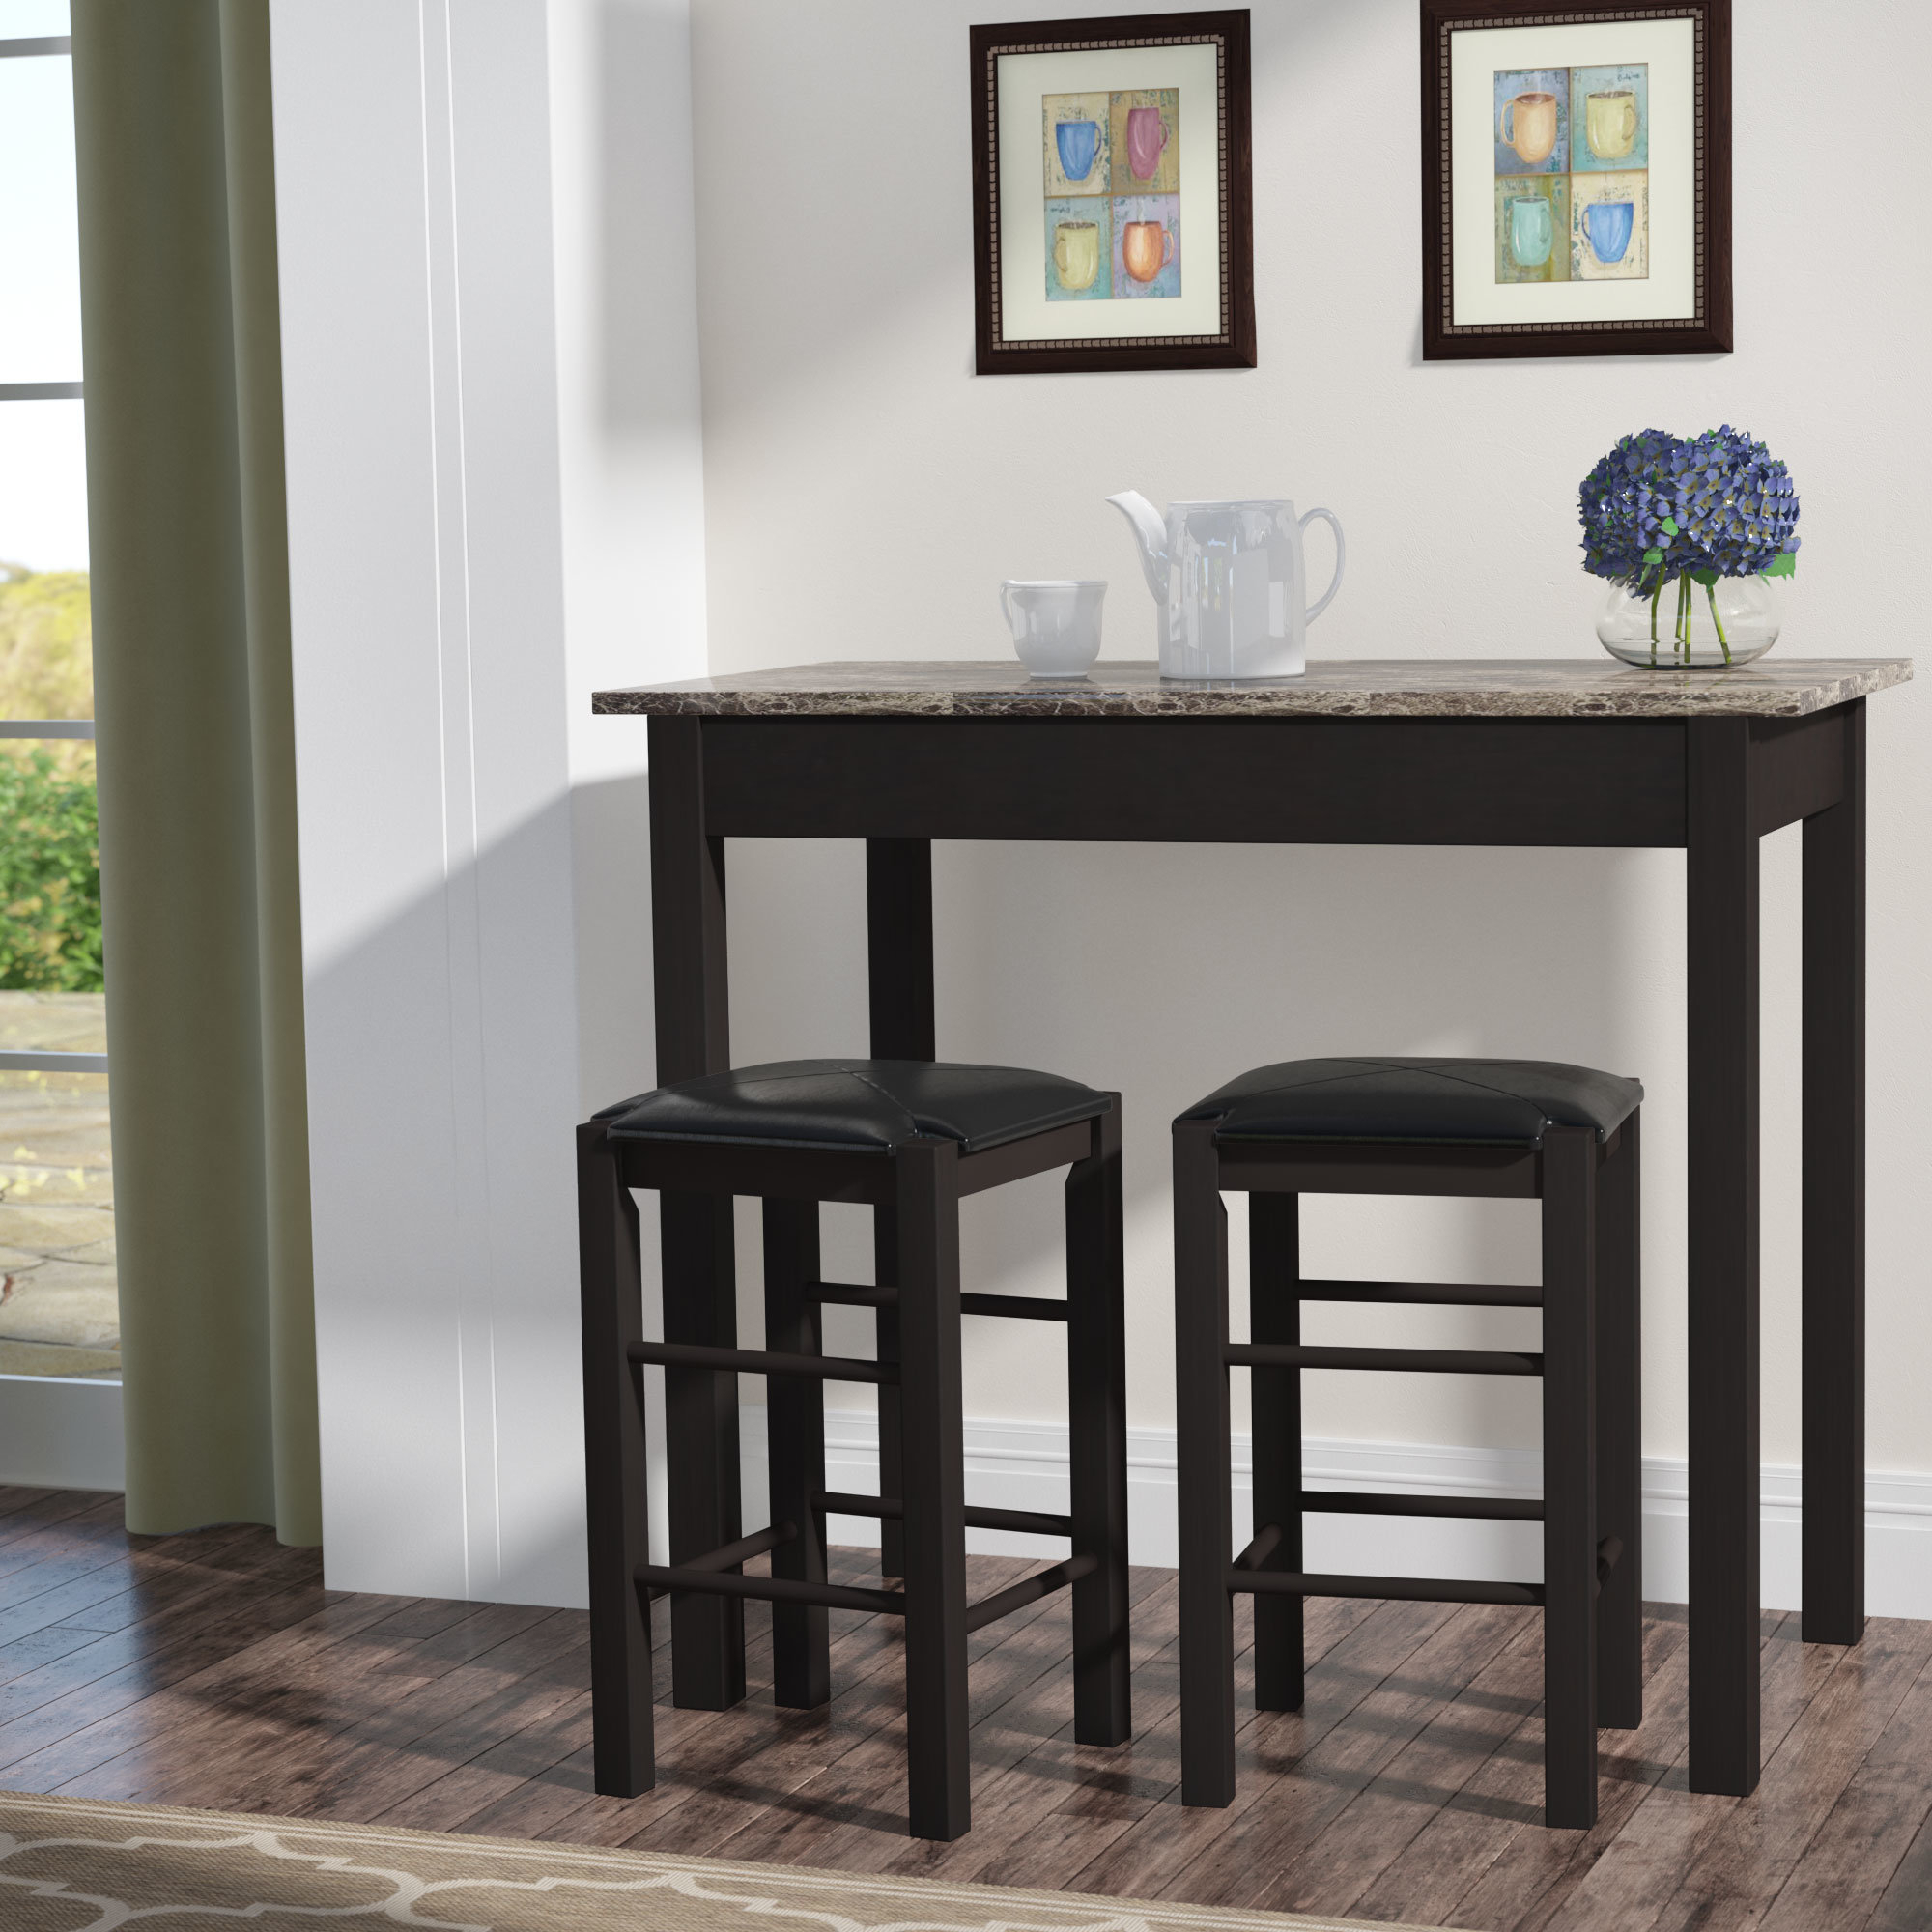 Most Recent Winston Porter Sheetz 3 Piece Counter Height Dining Set & Reviews Pertaining To Lillard 3 Piece Breakfast Nook Dining Sets (View 17 of 25)